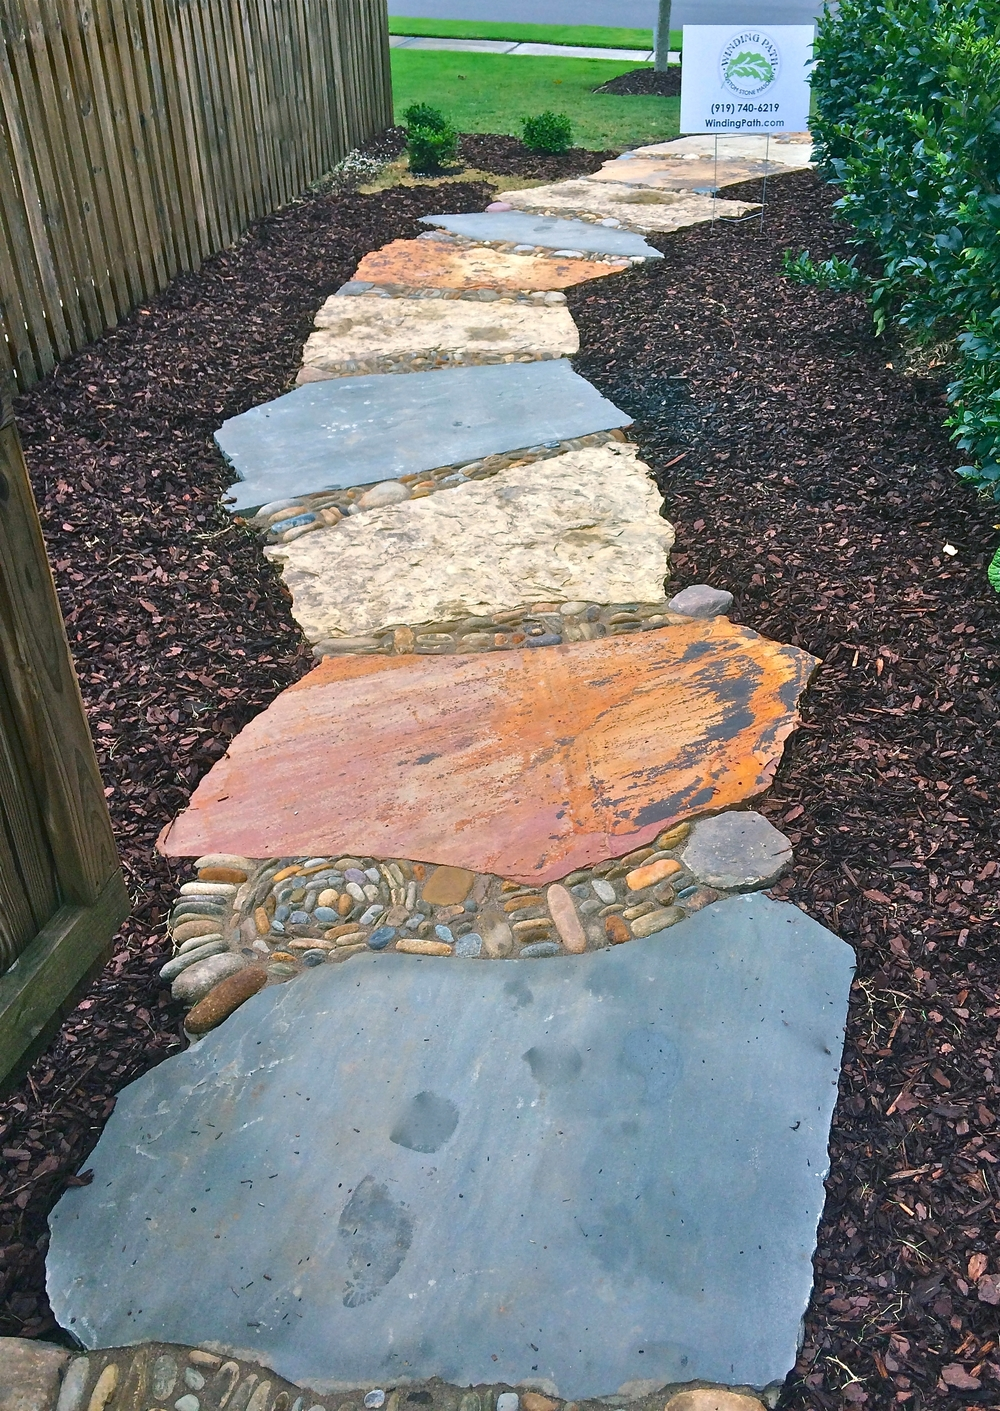 Thick flagstones with inlaid pebbles creates a winding garden path